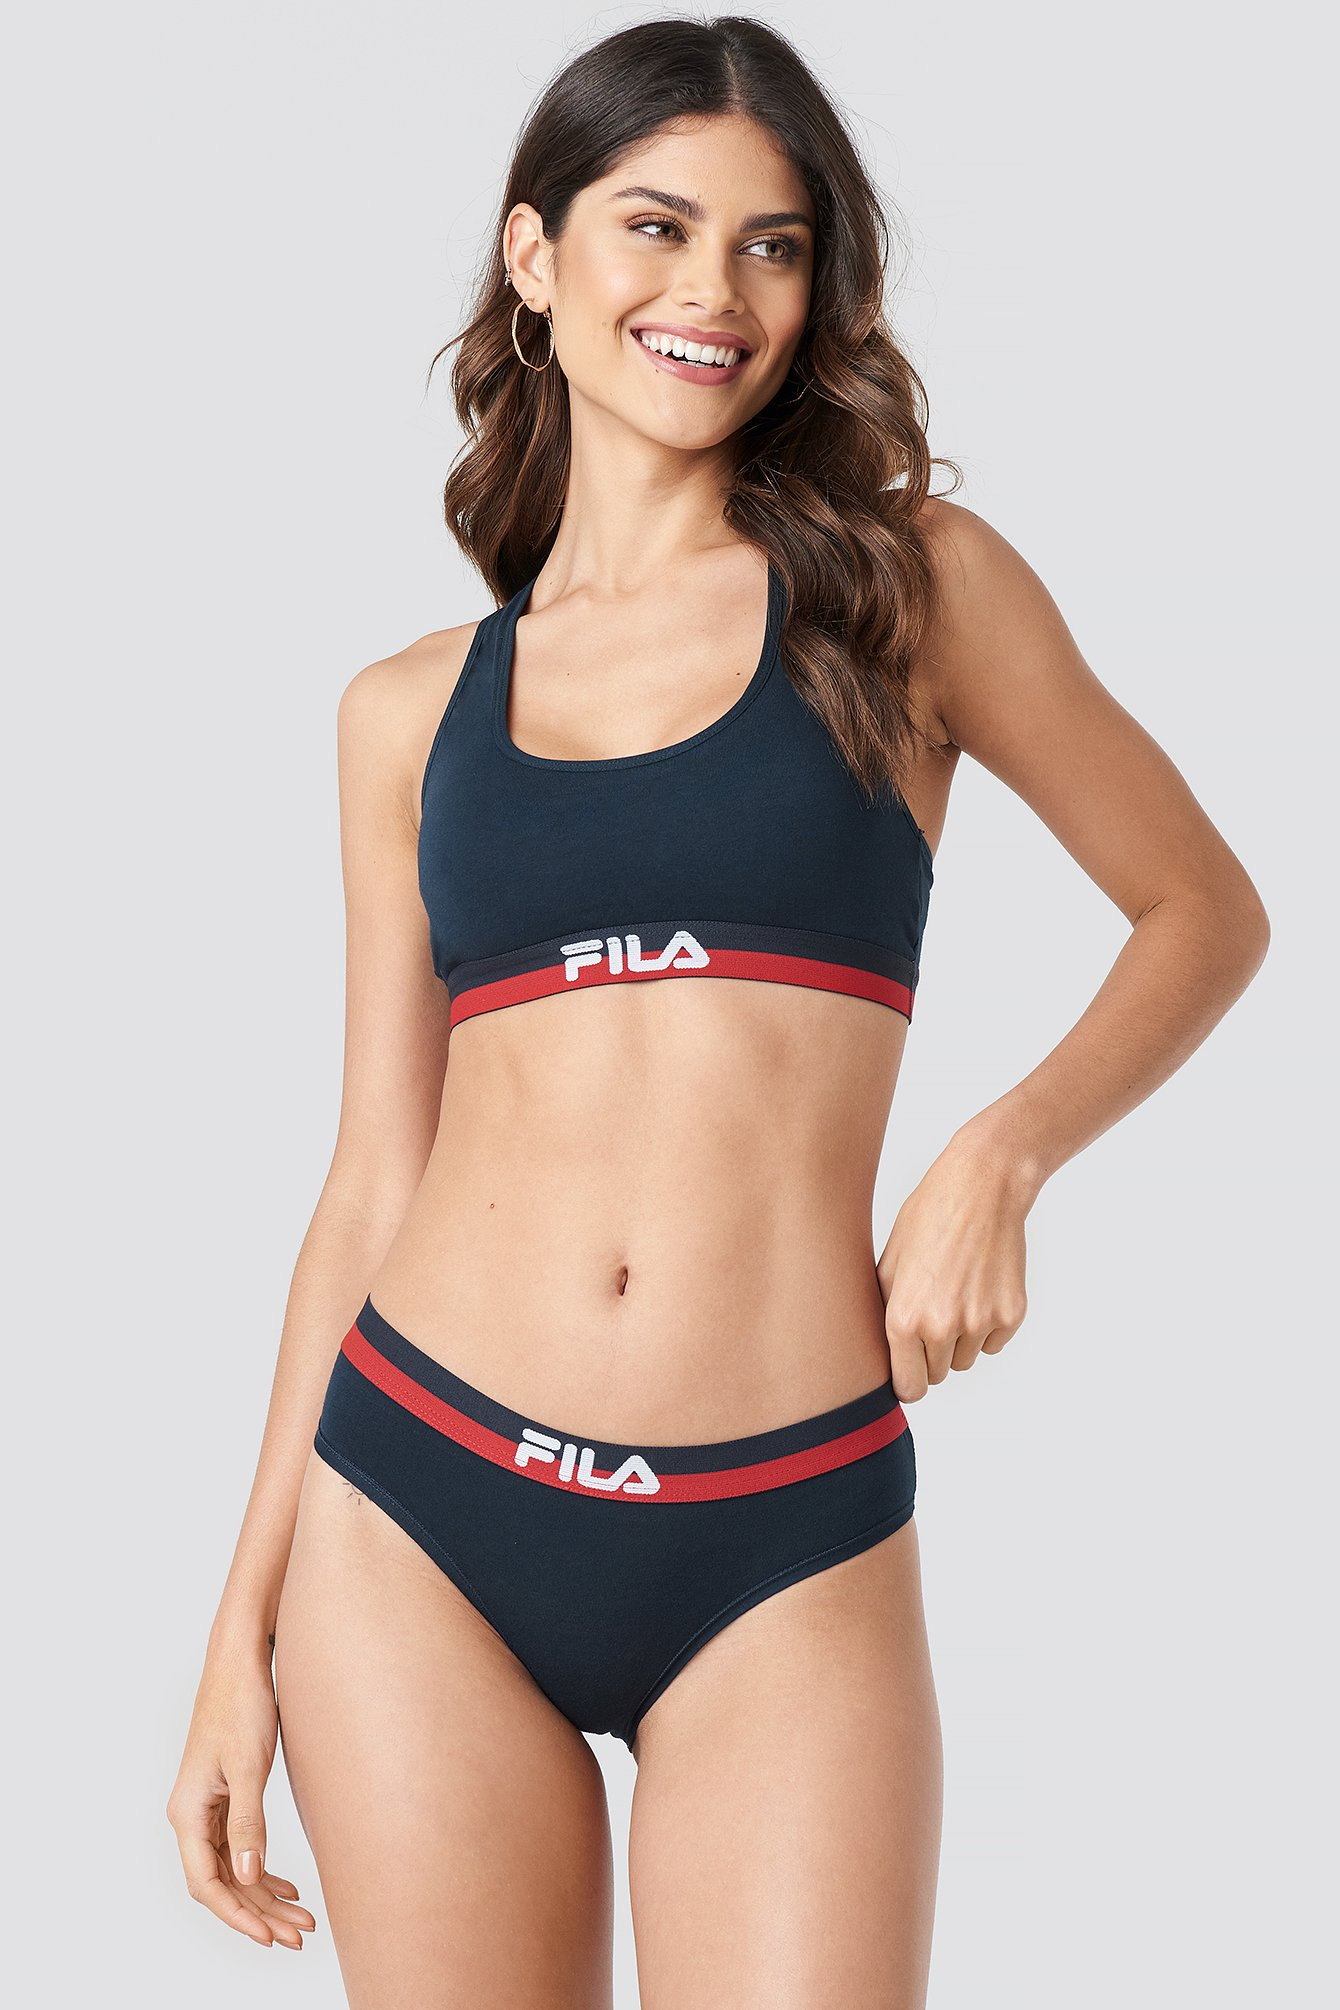 Fila Brief FU6050 NA-KD.COM